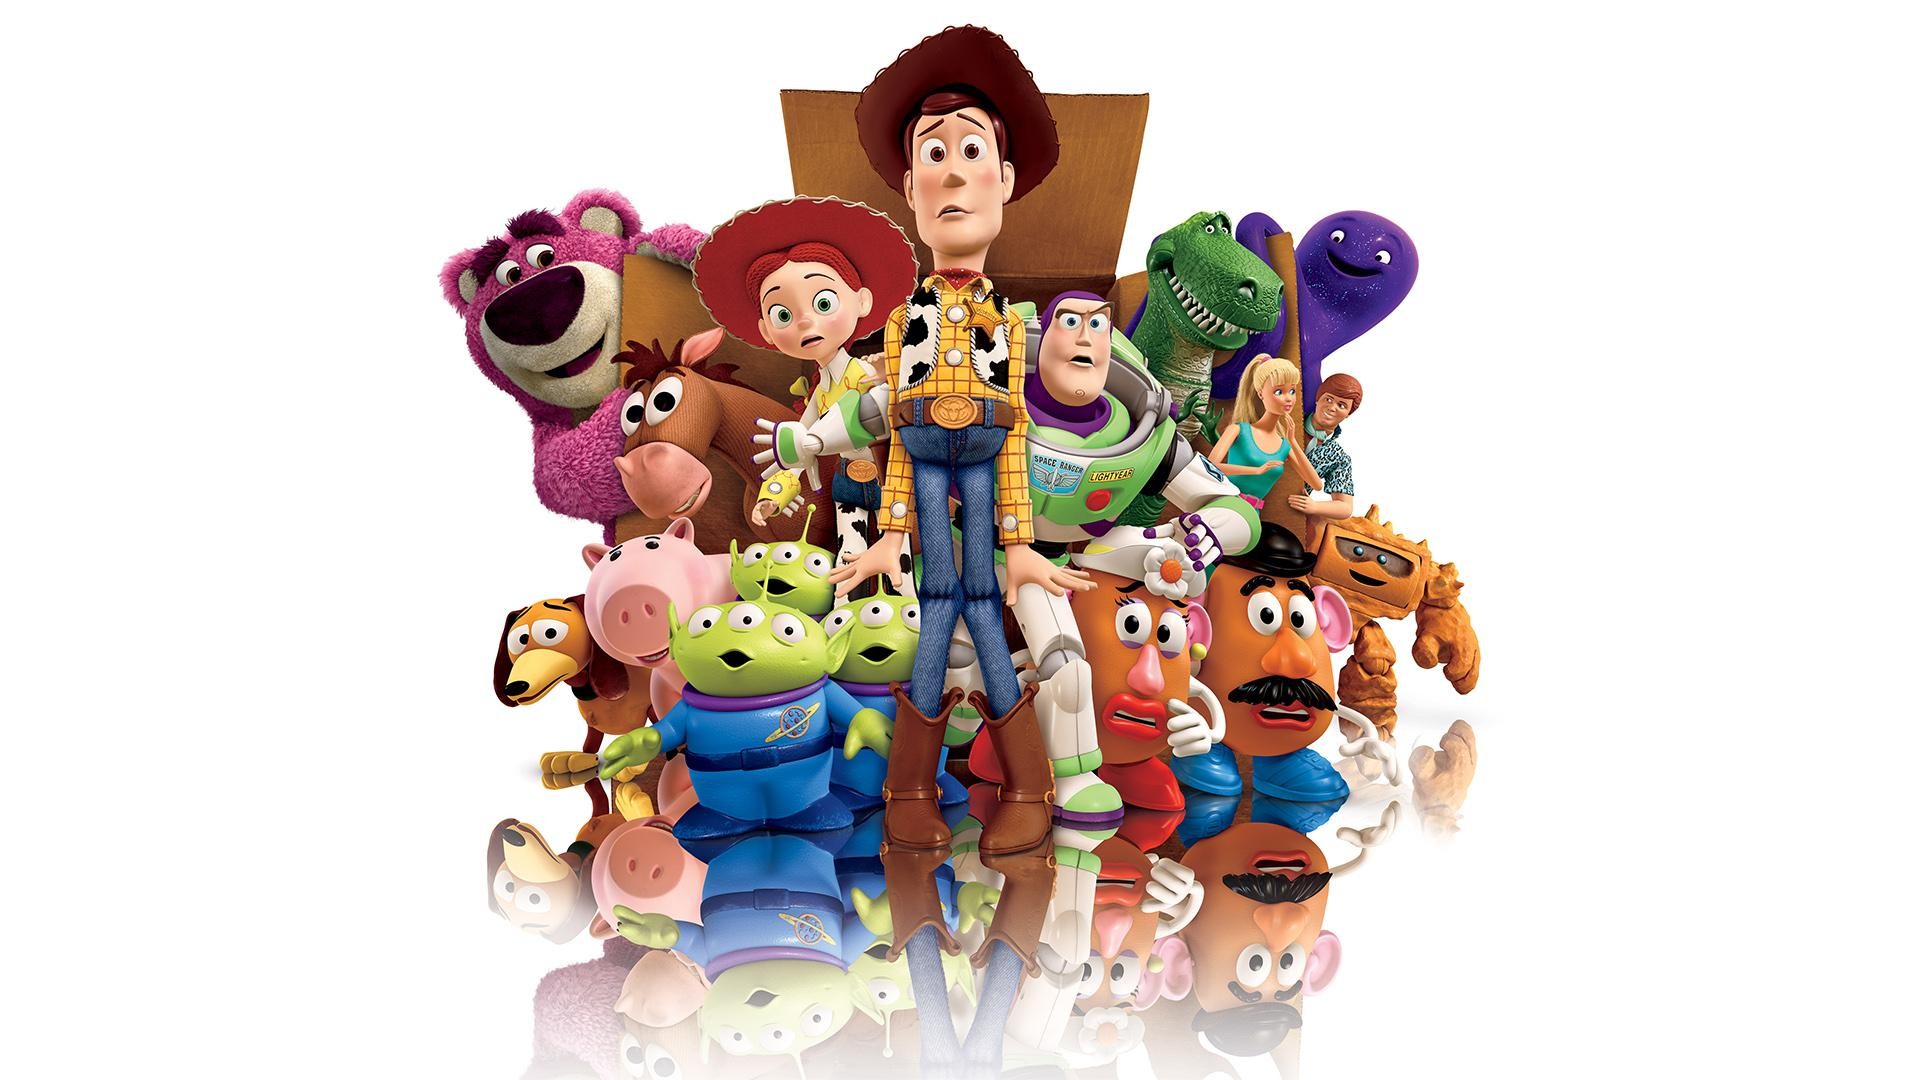 Download Toy Story Wallpaper Hd Backgrounds Download Itlcat